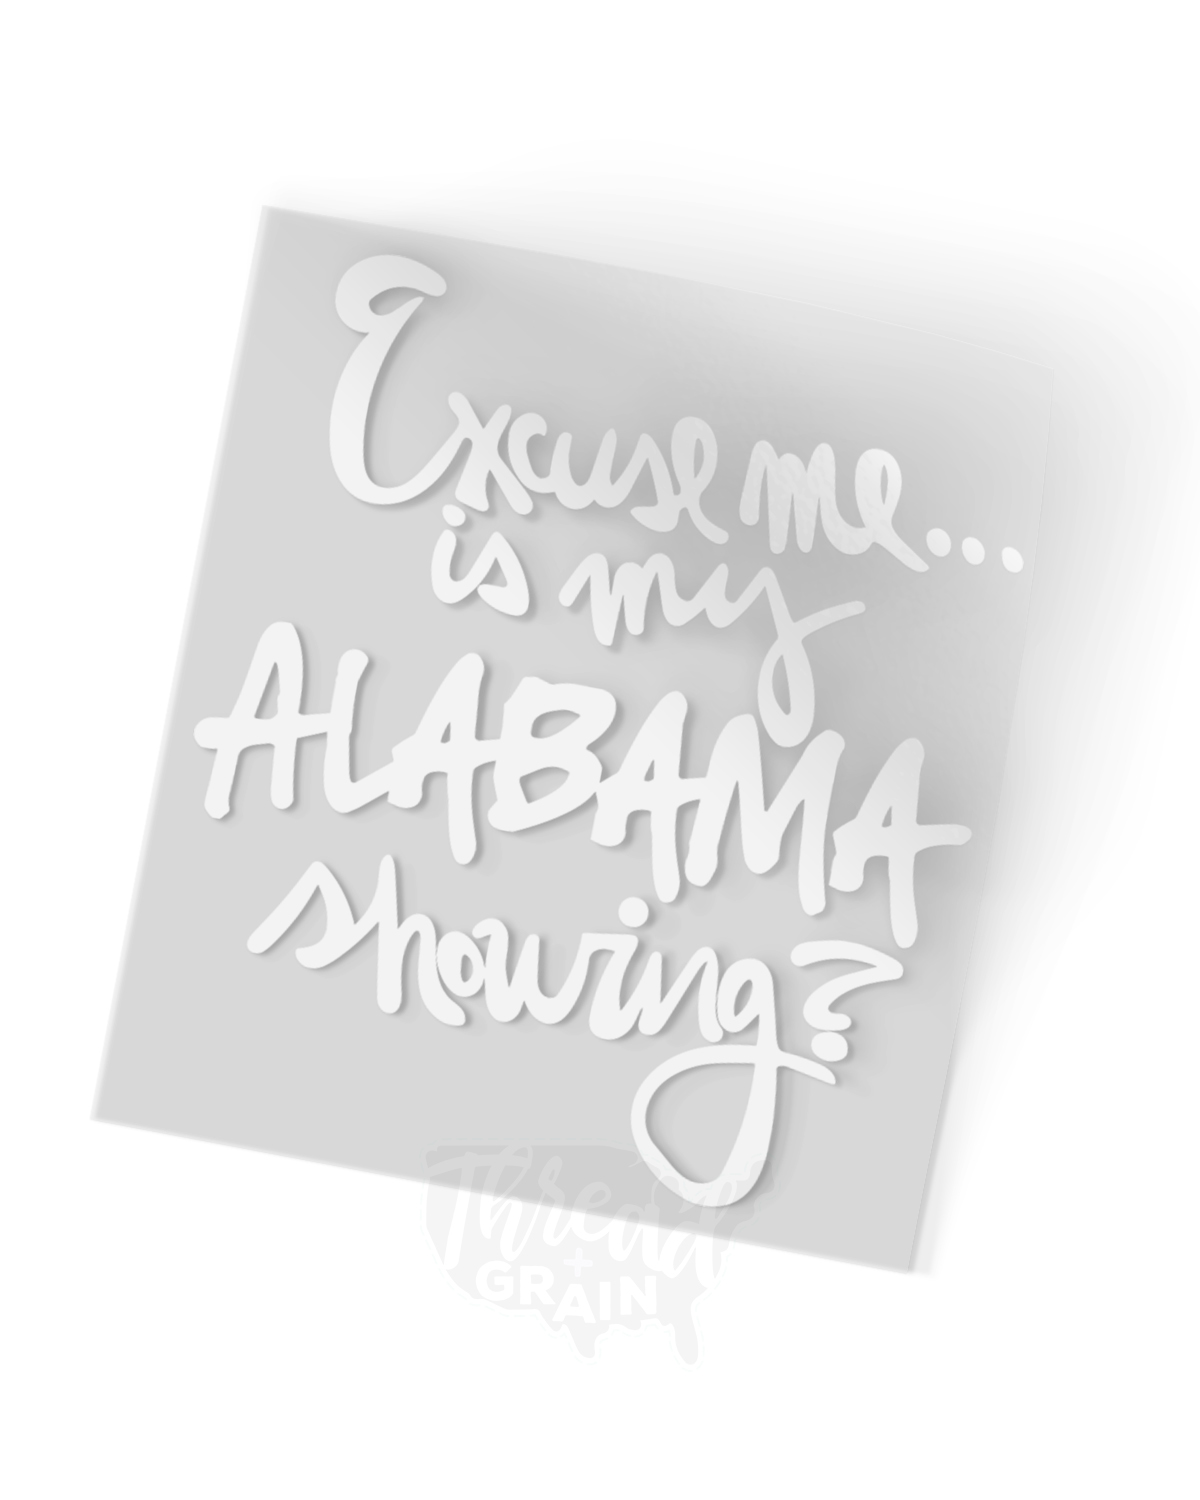 Alabama :: Is My Alabama Showing? IRON-ON TRANSFER